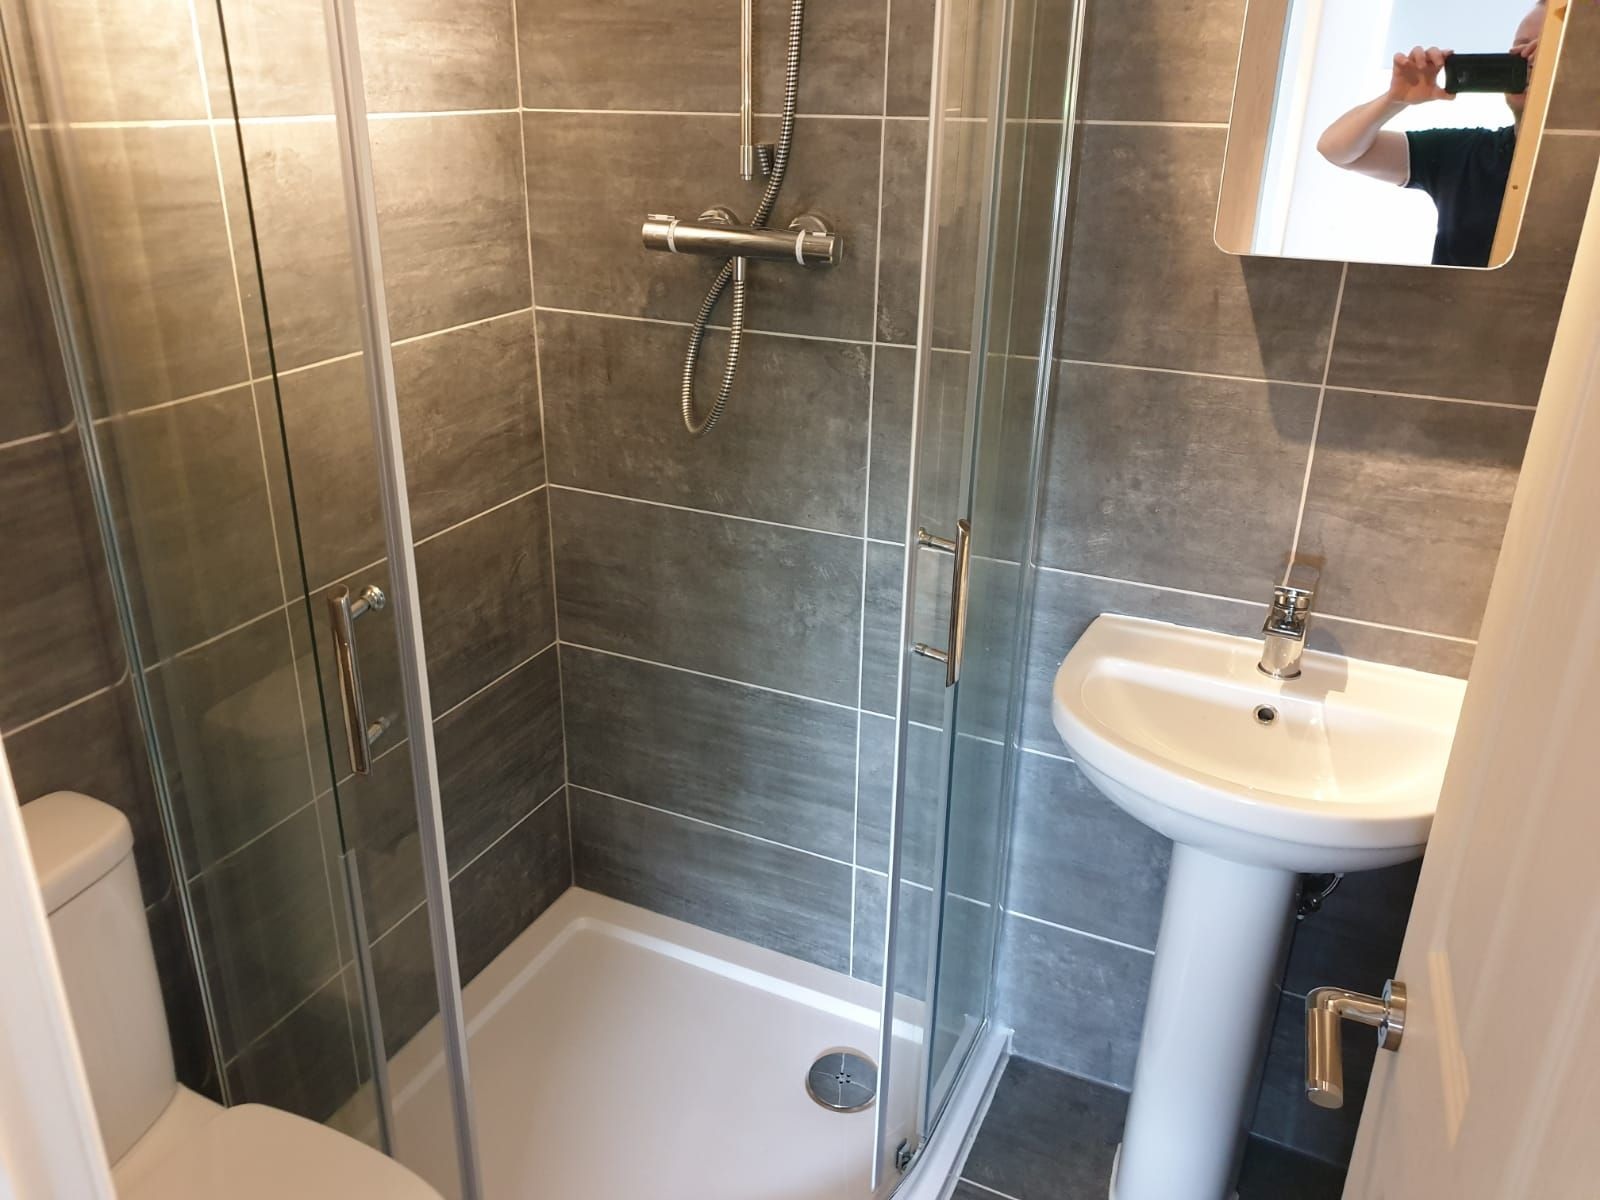 3 Bedroom Mid Terraced House For Sale - Bathroom/4 Piece Suite